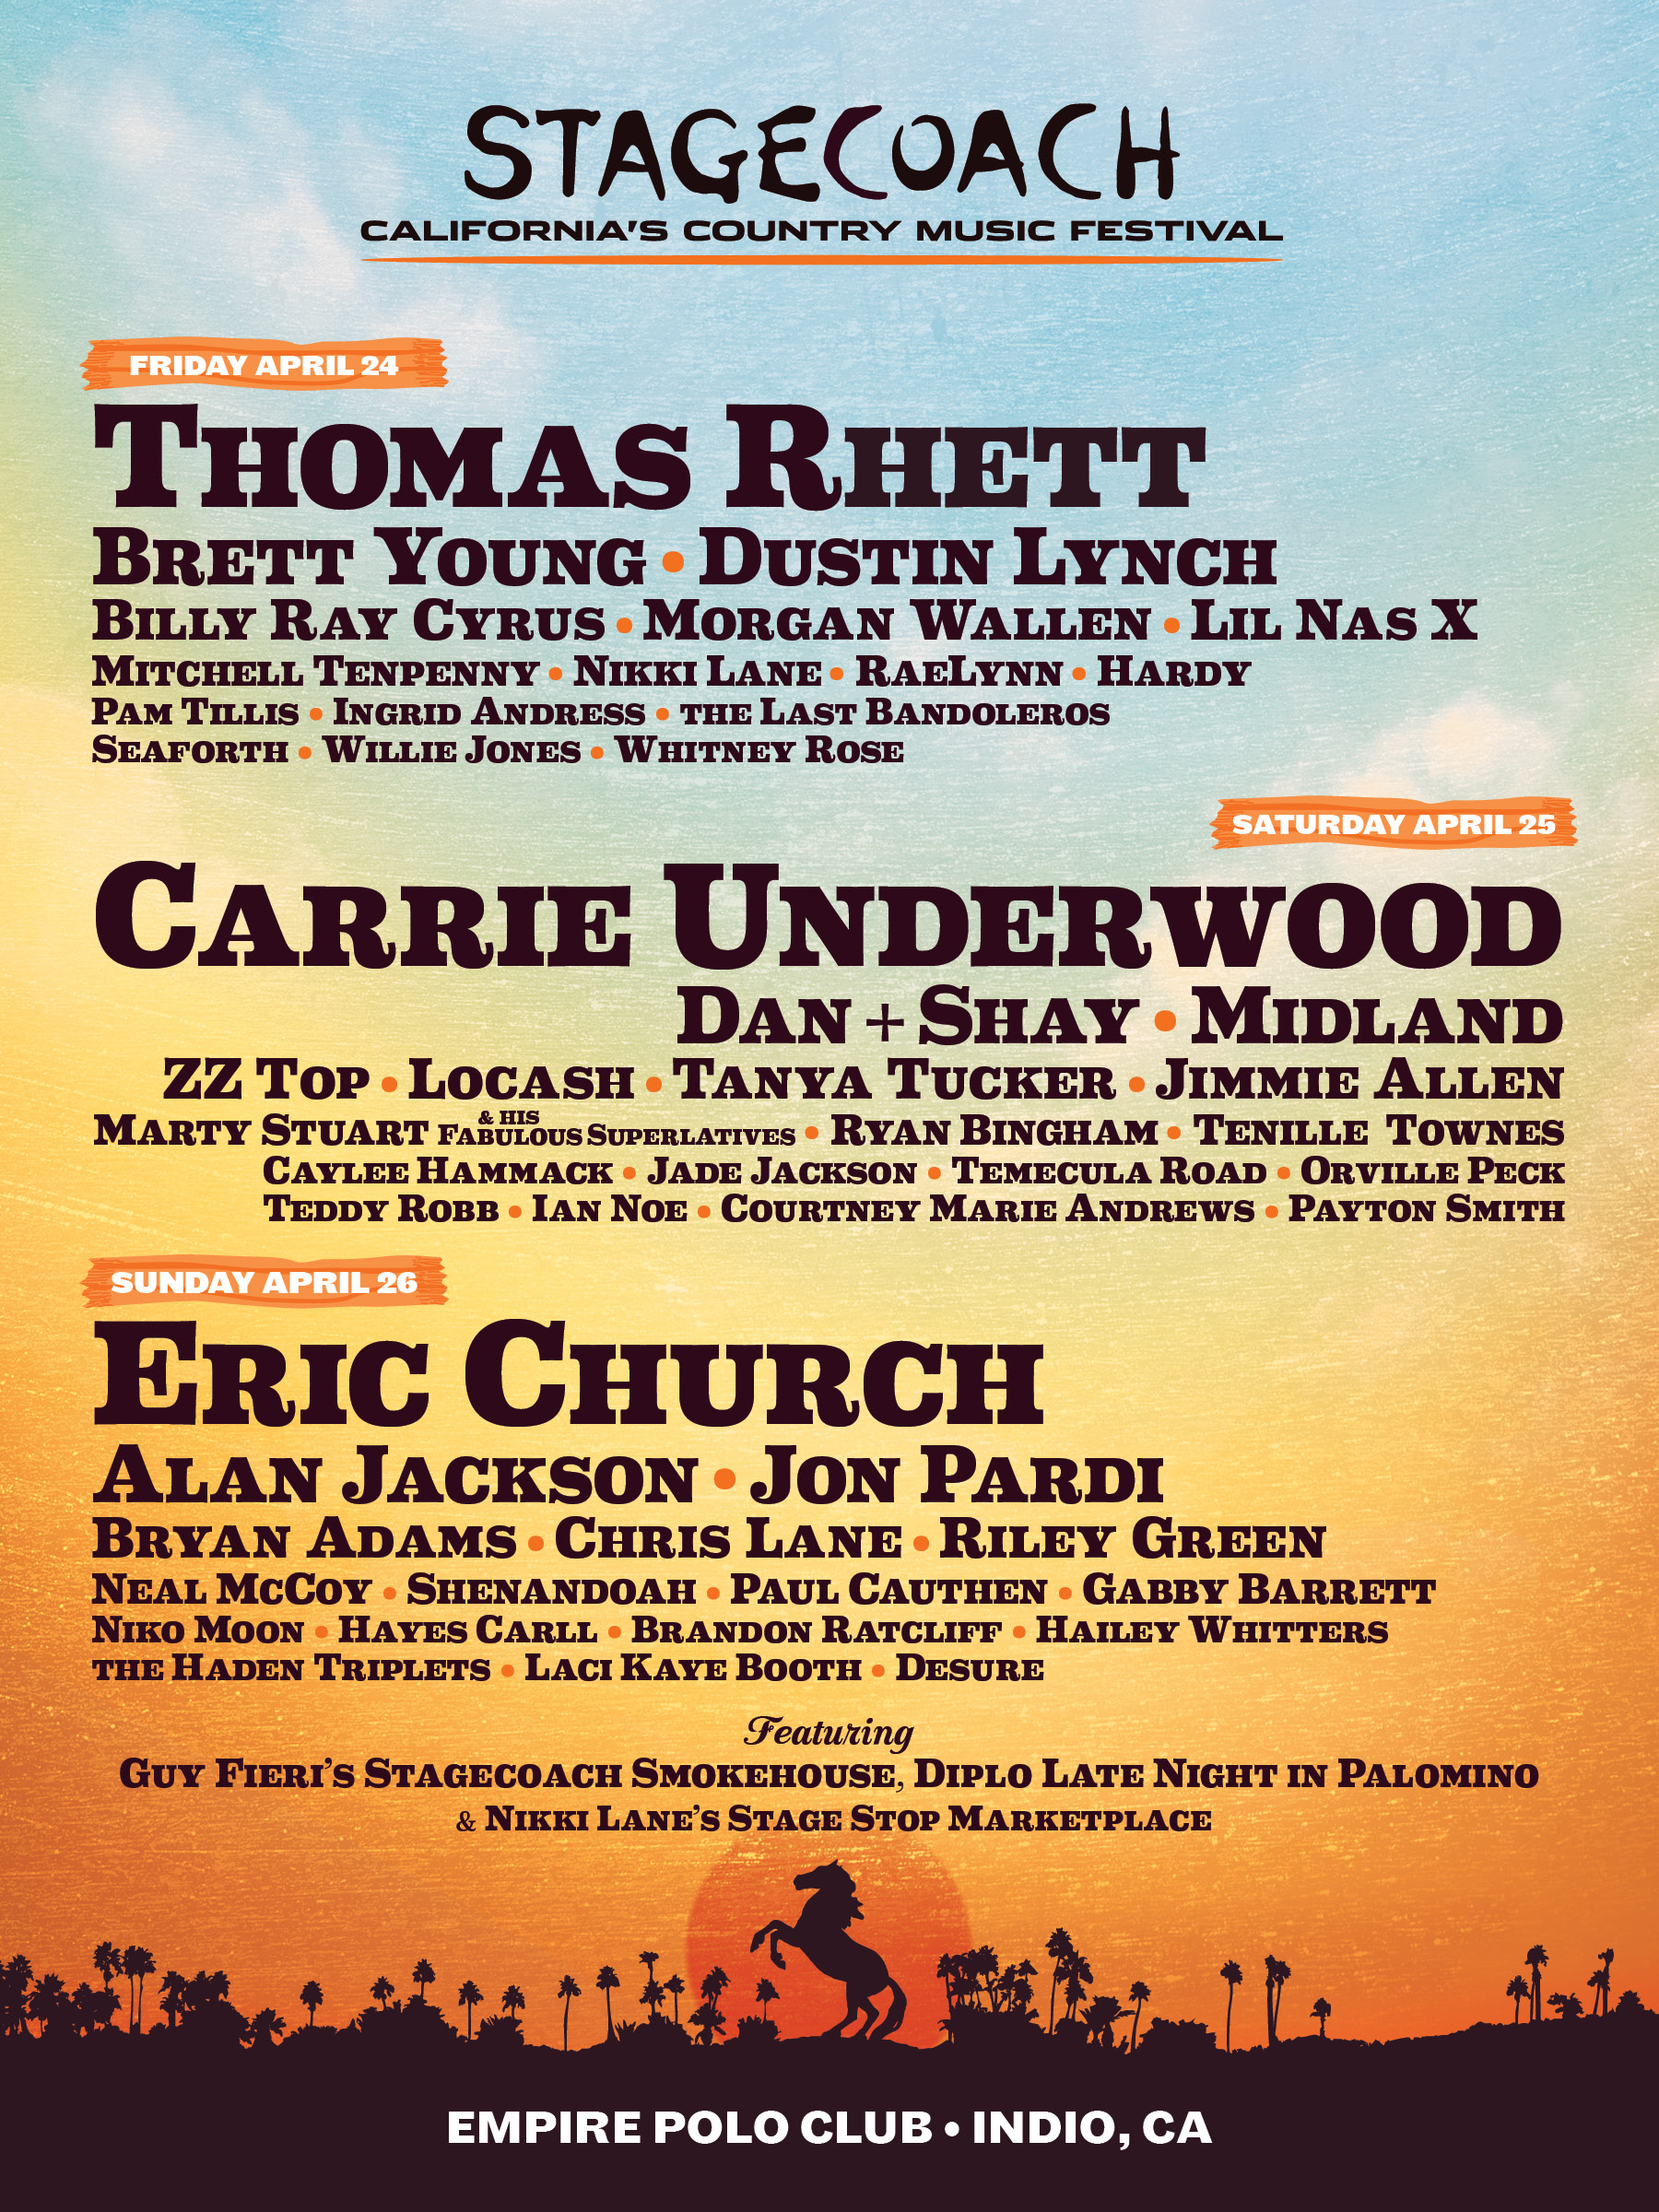 2020 Stagecoach Festival to Feature Exciting Lineup of Country Artists 1